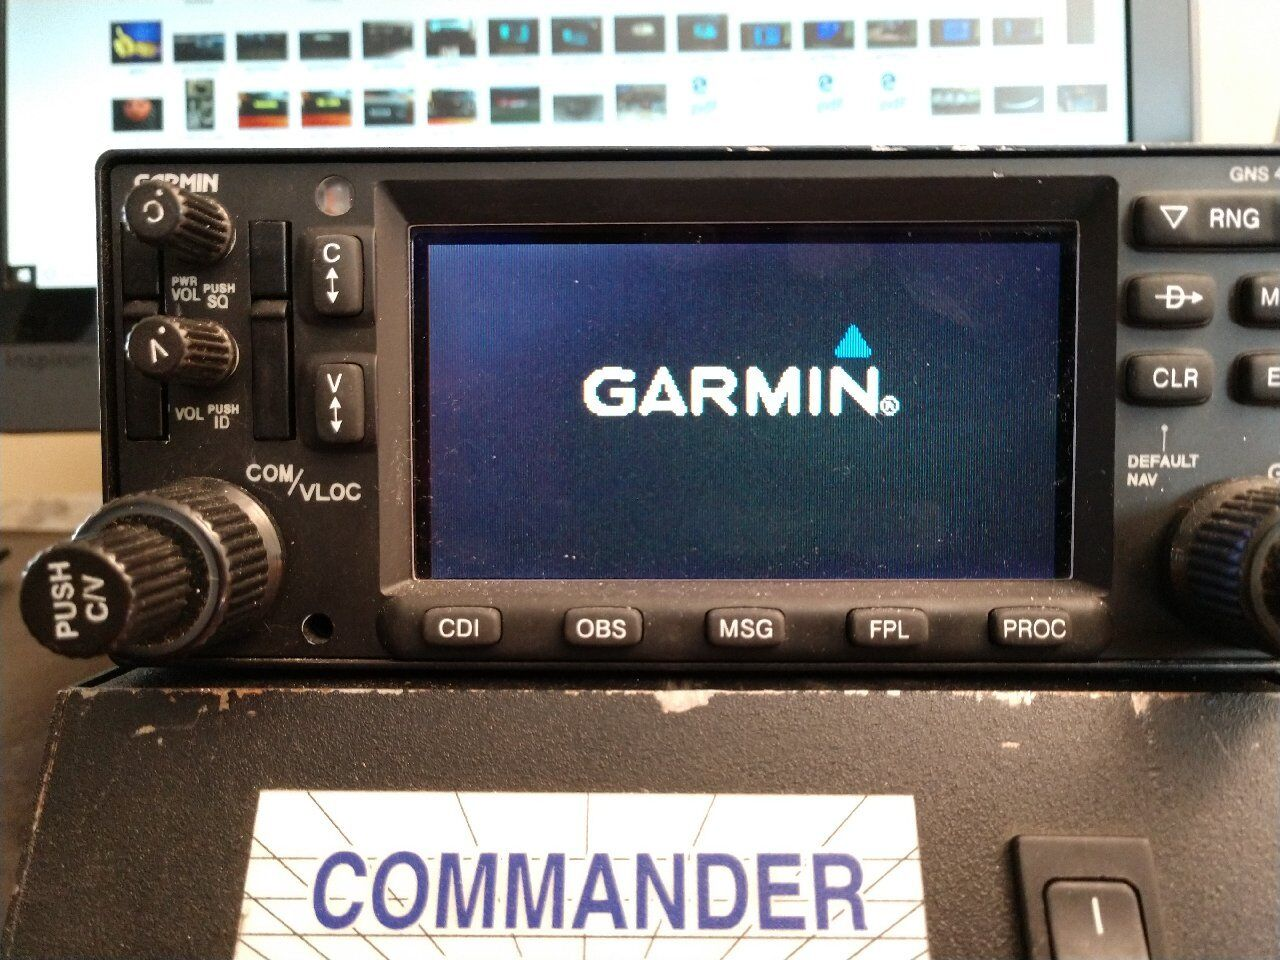 Garmin GNS-430W GPS/NAV.COM w/WAAS 28v 011-01060-45 w/tray and antenna